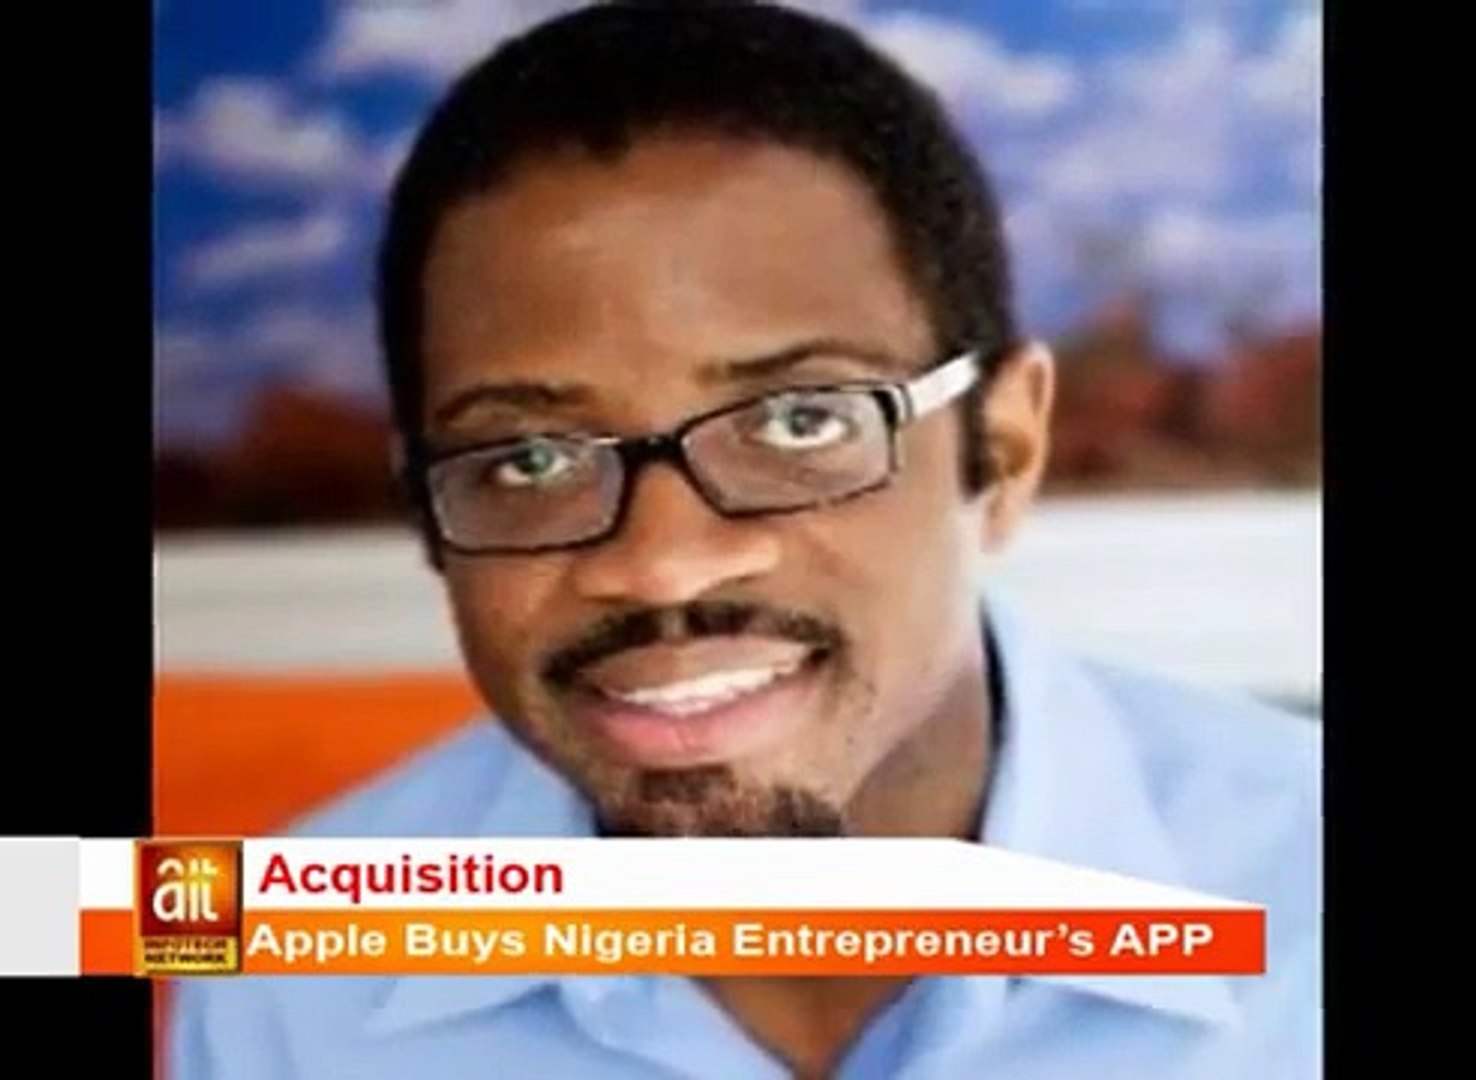 ACQUISITION: Apple Buys Nigeria Enterpreneur's APP [Nigeria Technology News]